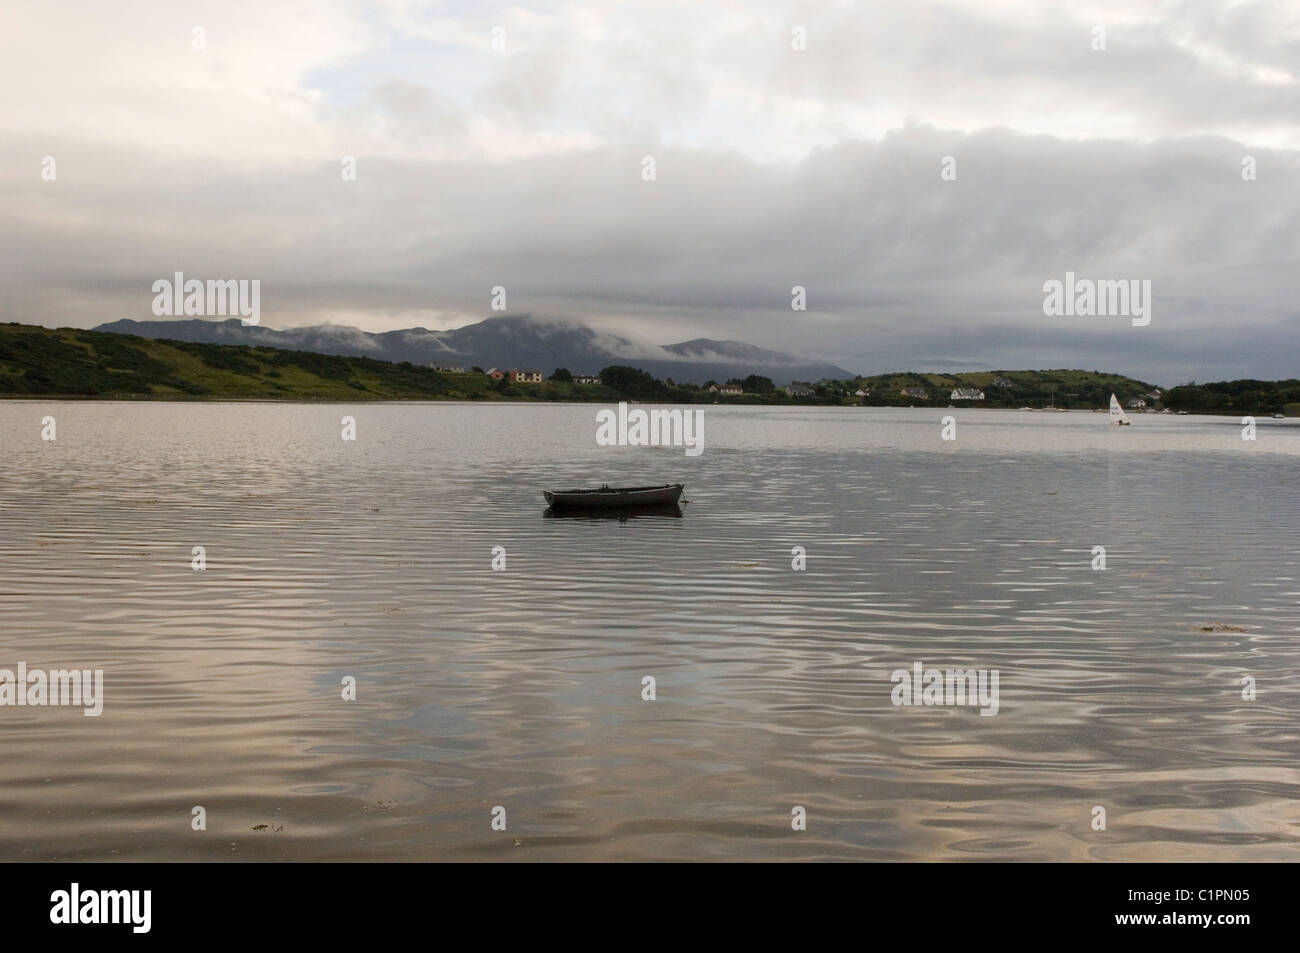 Republic of Ireland, County Mayo, Achill Island, boat on saltwater inlet - Stock Image